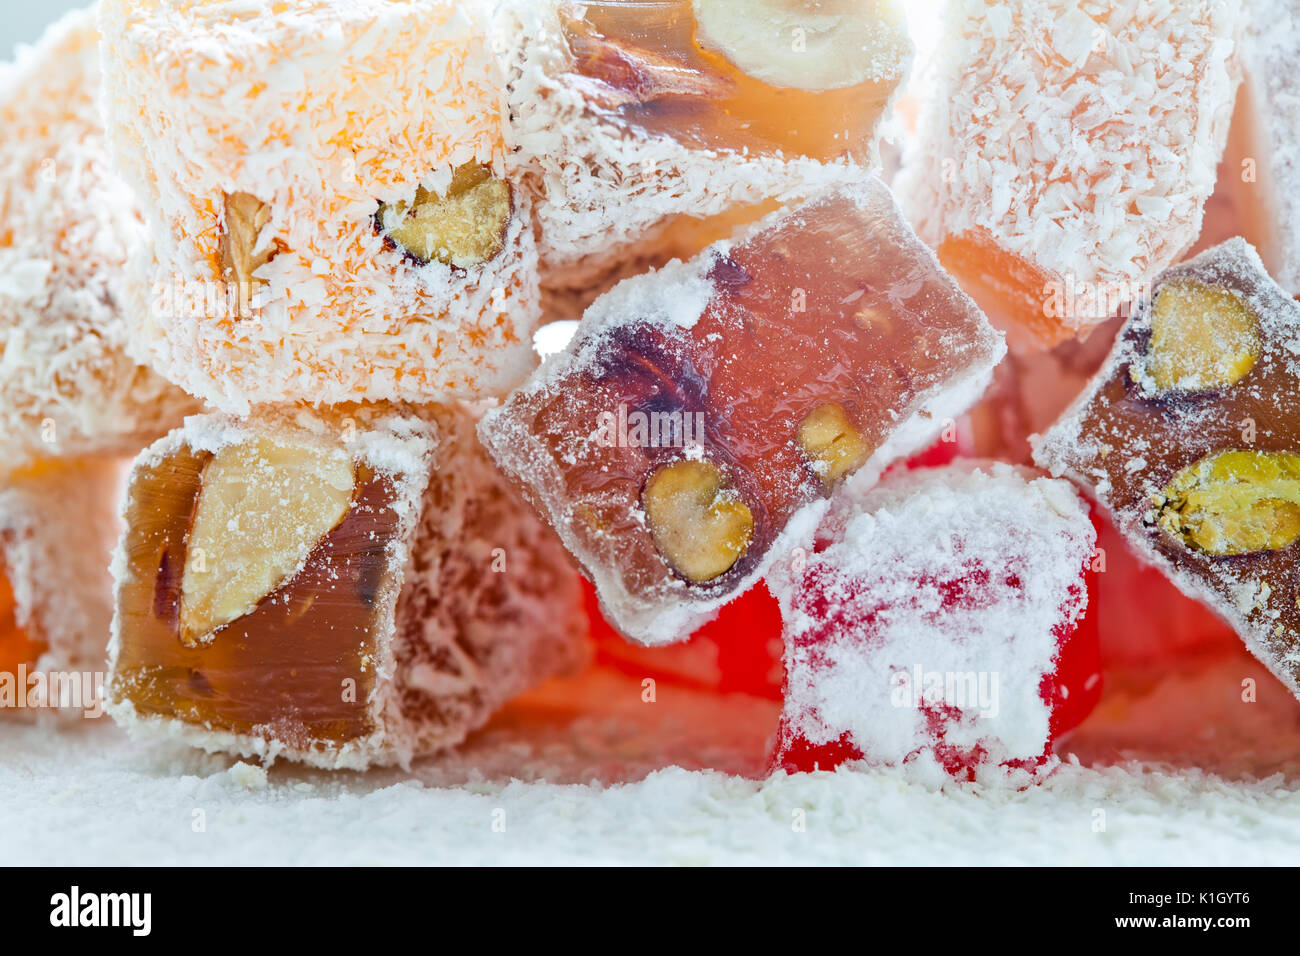 Tasty oriental sweets (Turkish delight lokum) with powdered sugar. - Stock Image